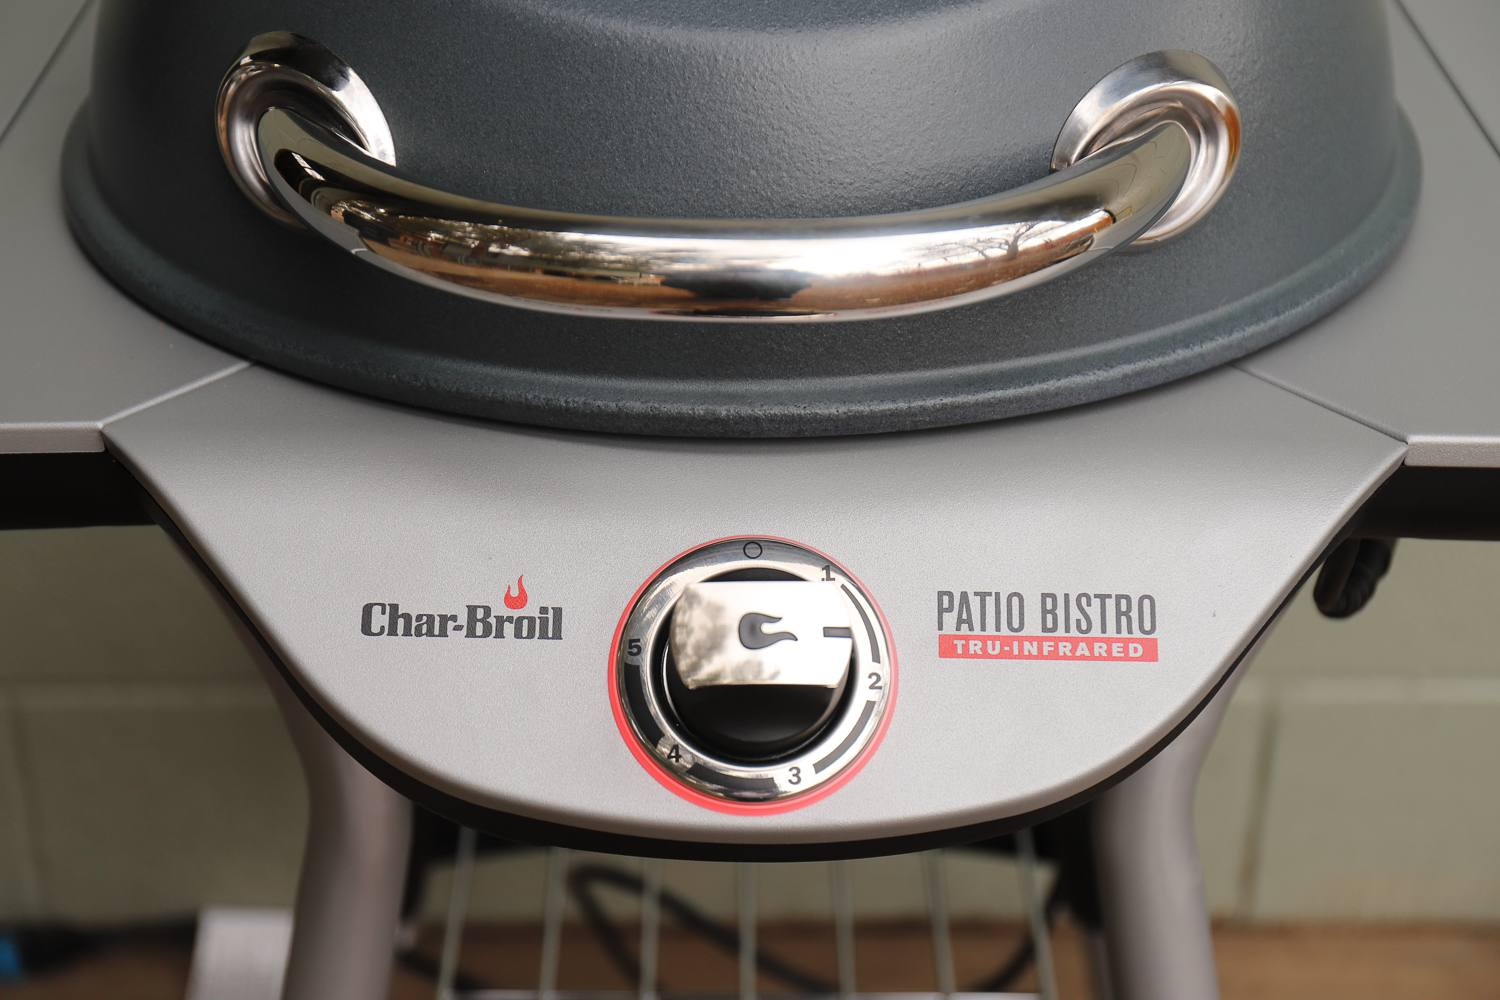 Char Broil Patio Bistro Electric Grill Review Delivers On Smoky Flavor